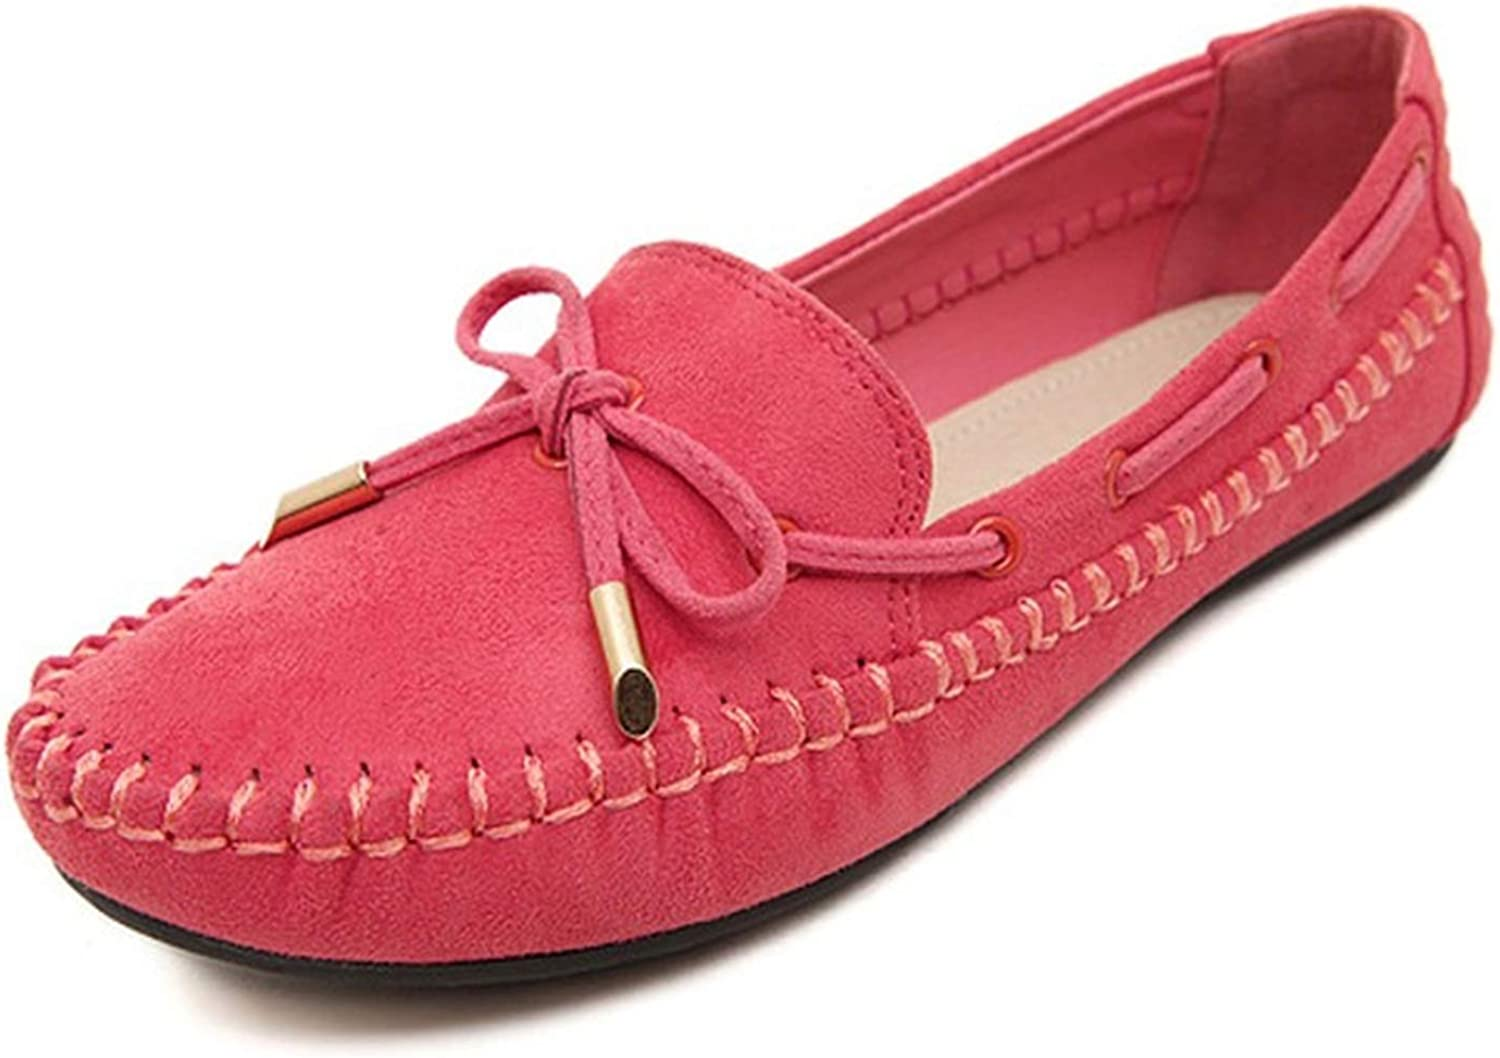 Ting room Candy color Women Loafers Tassel Fashion Round Toe Ladies Flat shoes Woman Flats Casual shoes